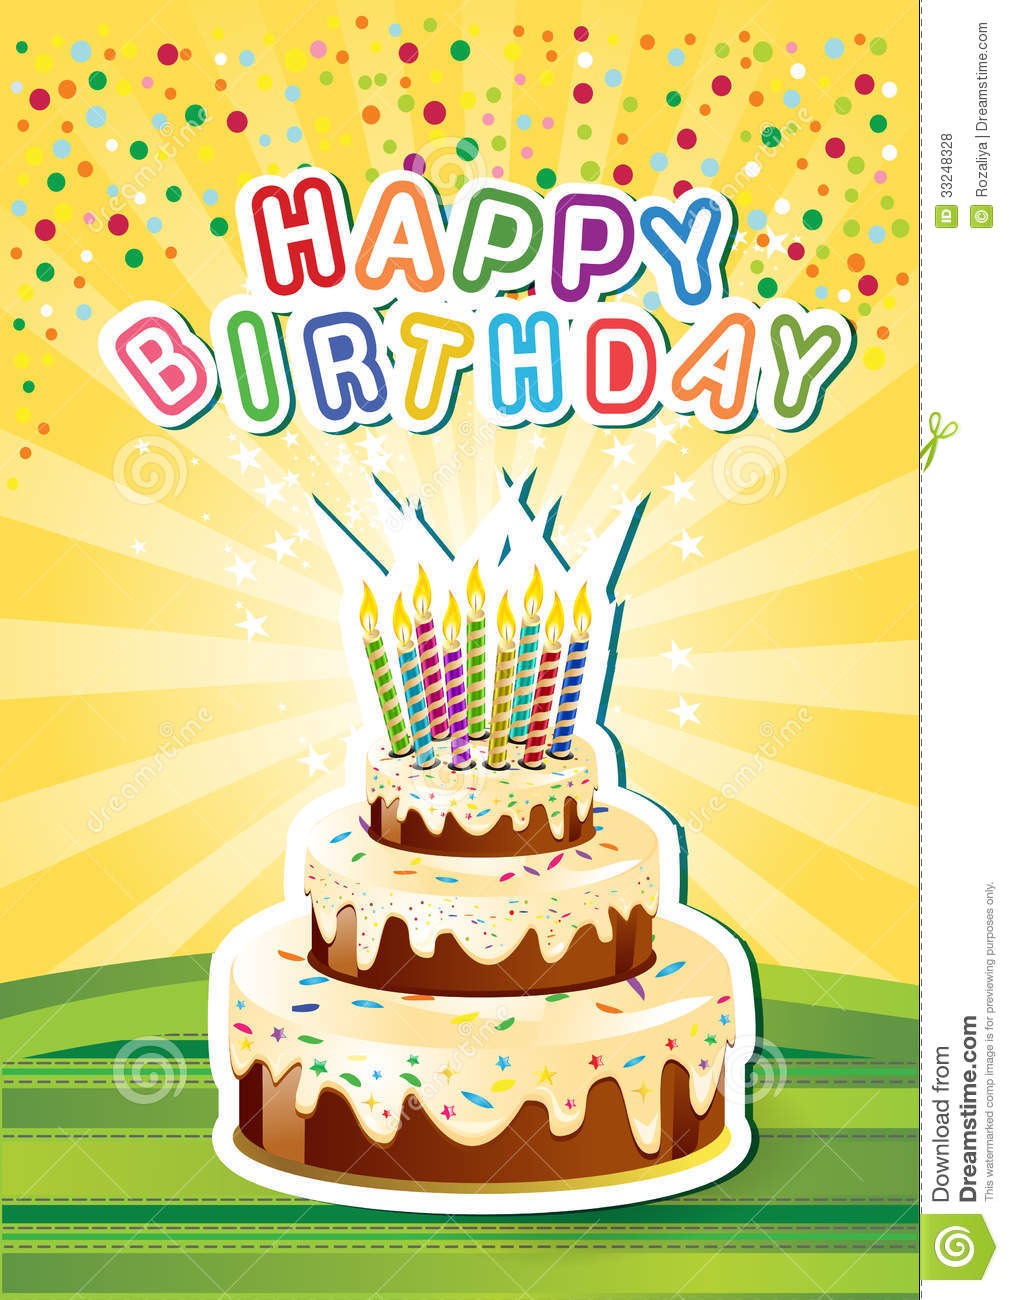 Free Greeting Card Templates Downloads 5th birthday party – Happy Birthday Card Template Free Download